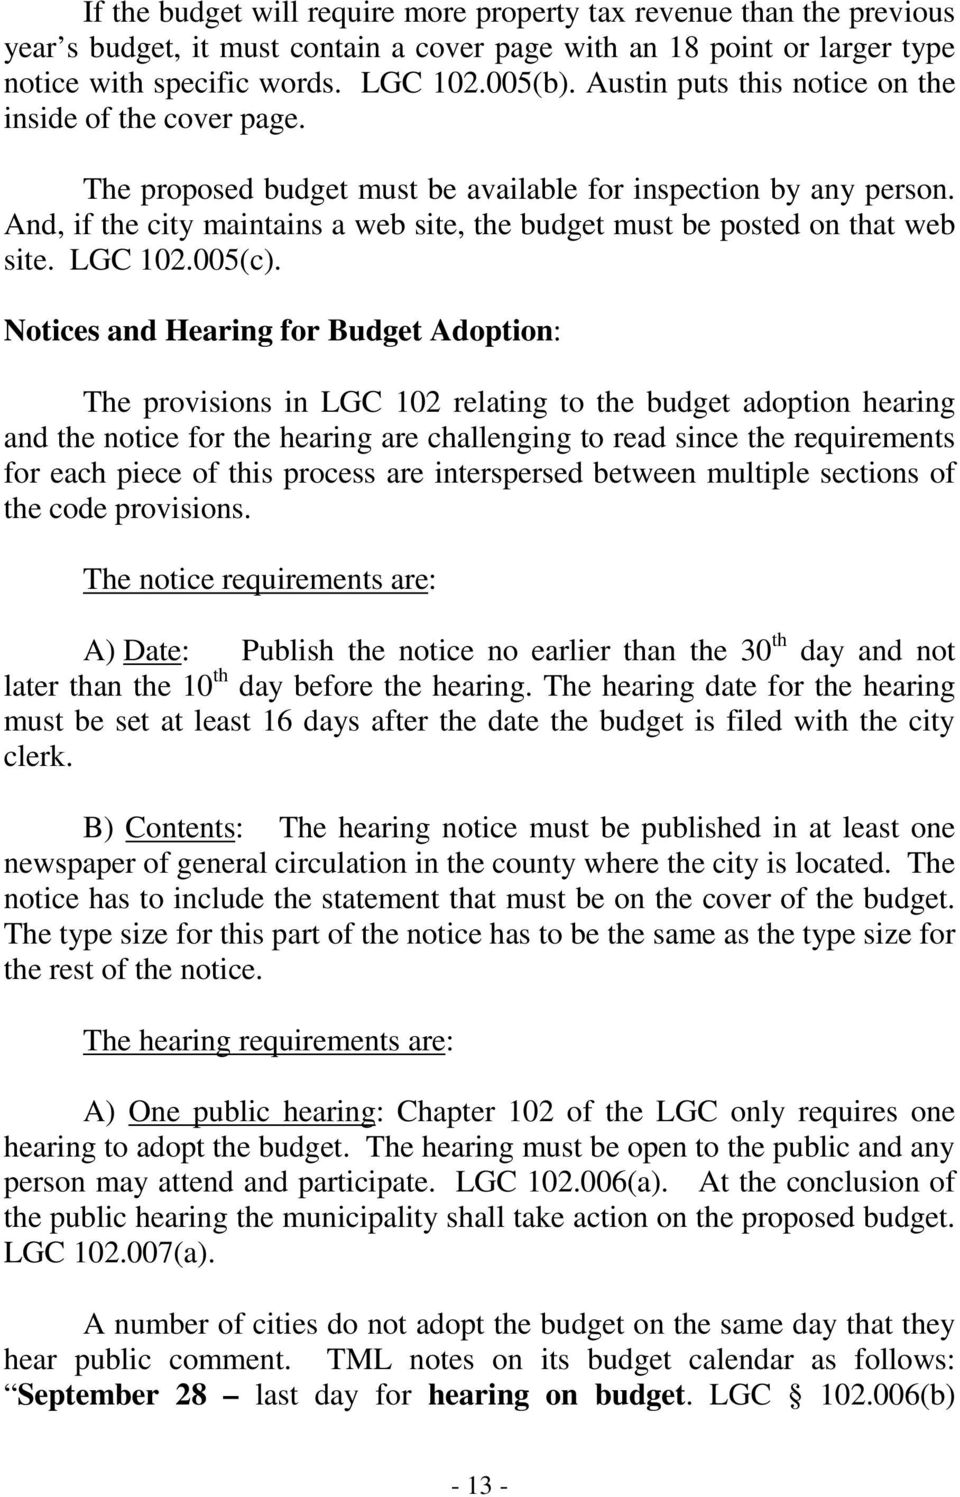 And, if the city maintains a web site, the budget must be posted on that web site. LGC 102.005(c).